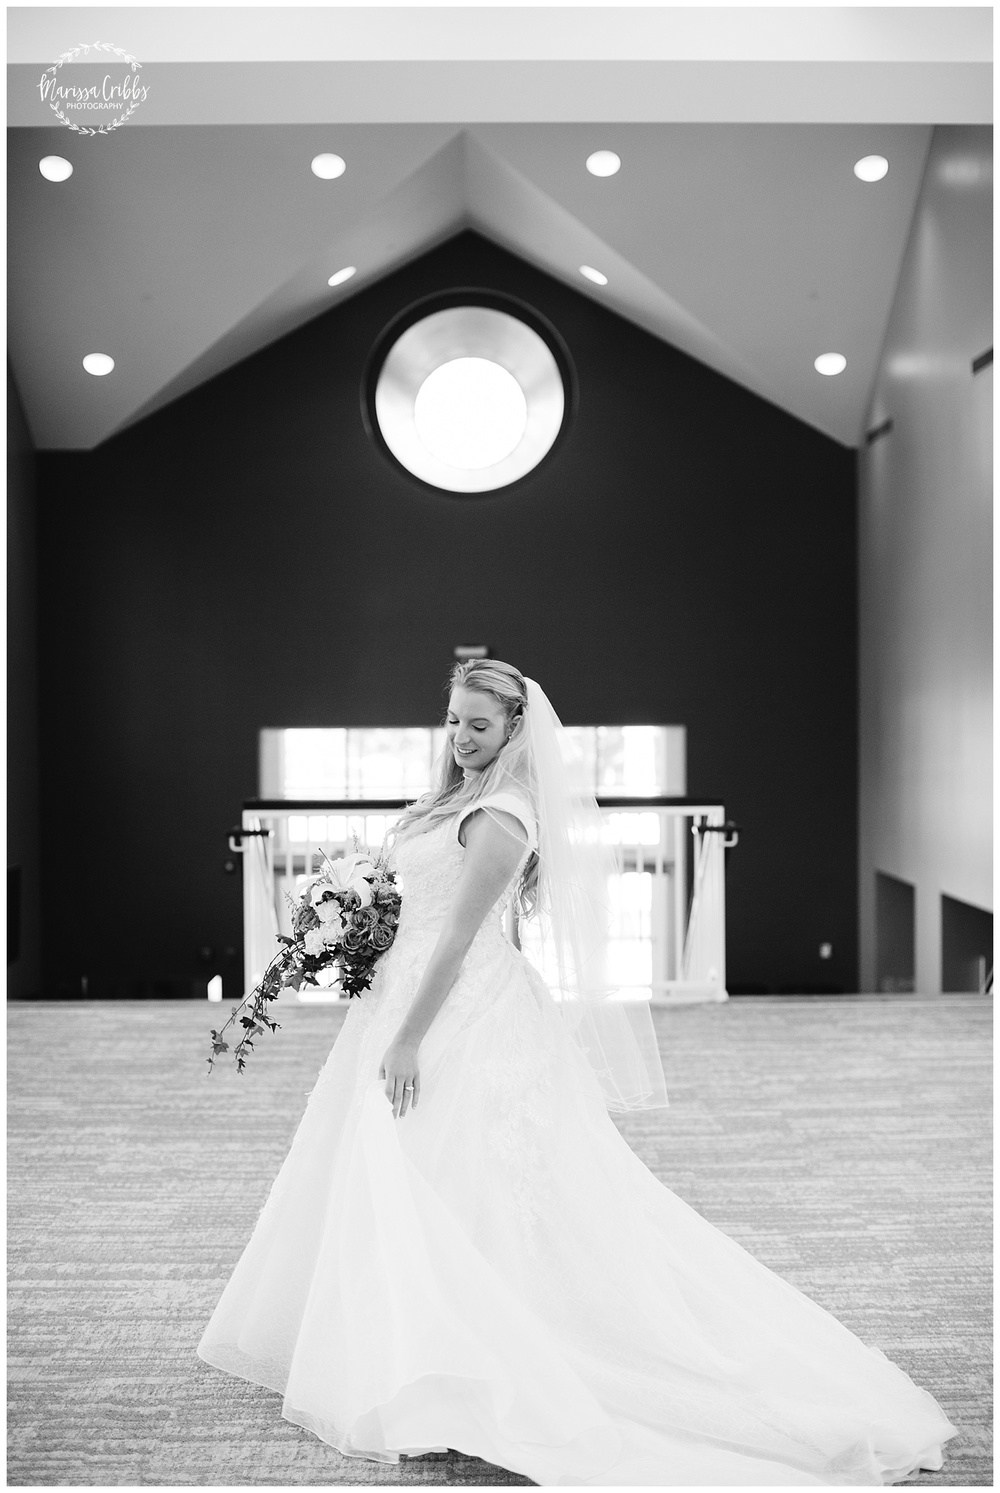 Jimenez Wedding | Marissa Cribbs Photography_0248.jpg